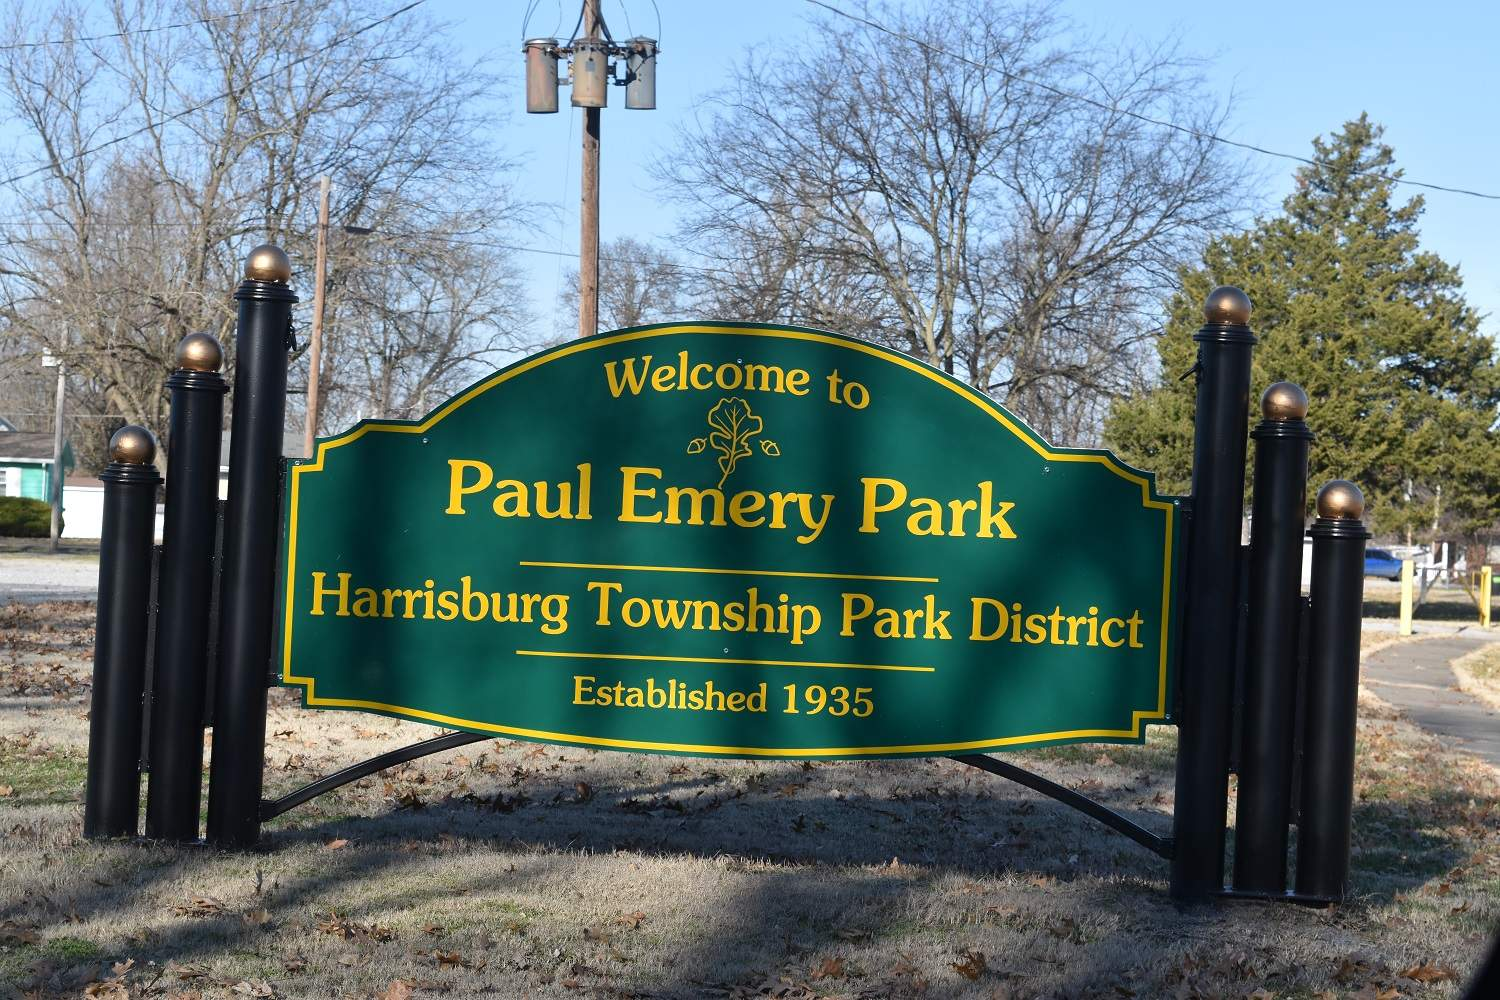 The main responsibility of the park district is Paul Emery Park, named for the father of Ron Emery and grandfather of Blake Emery